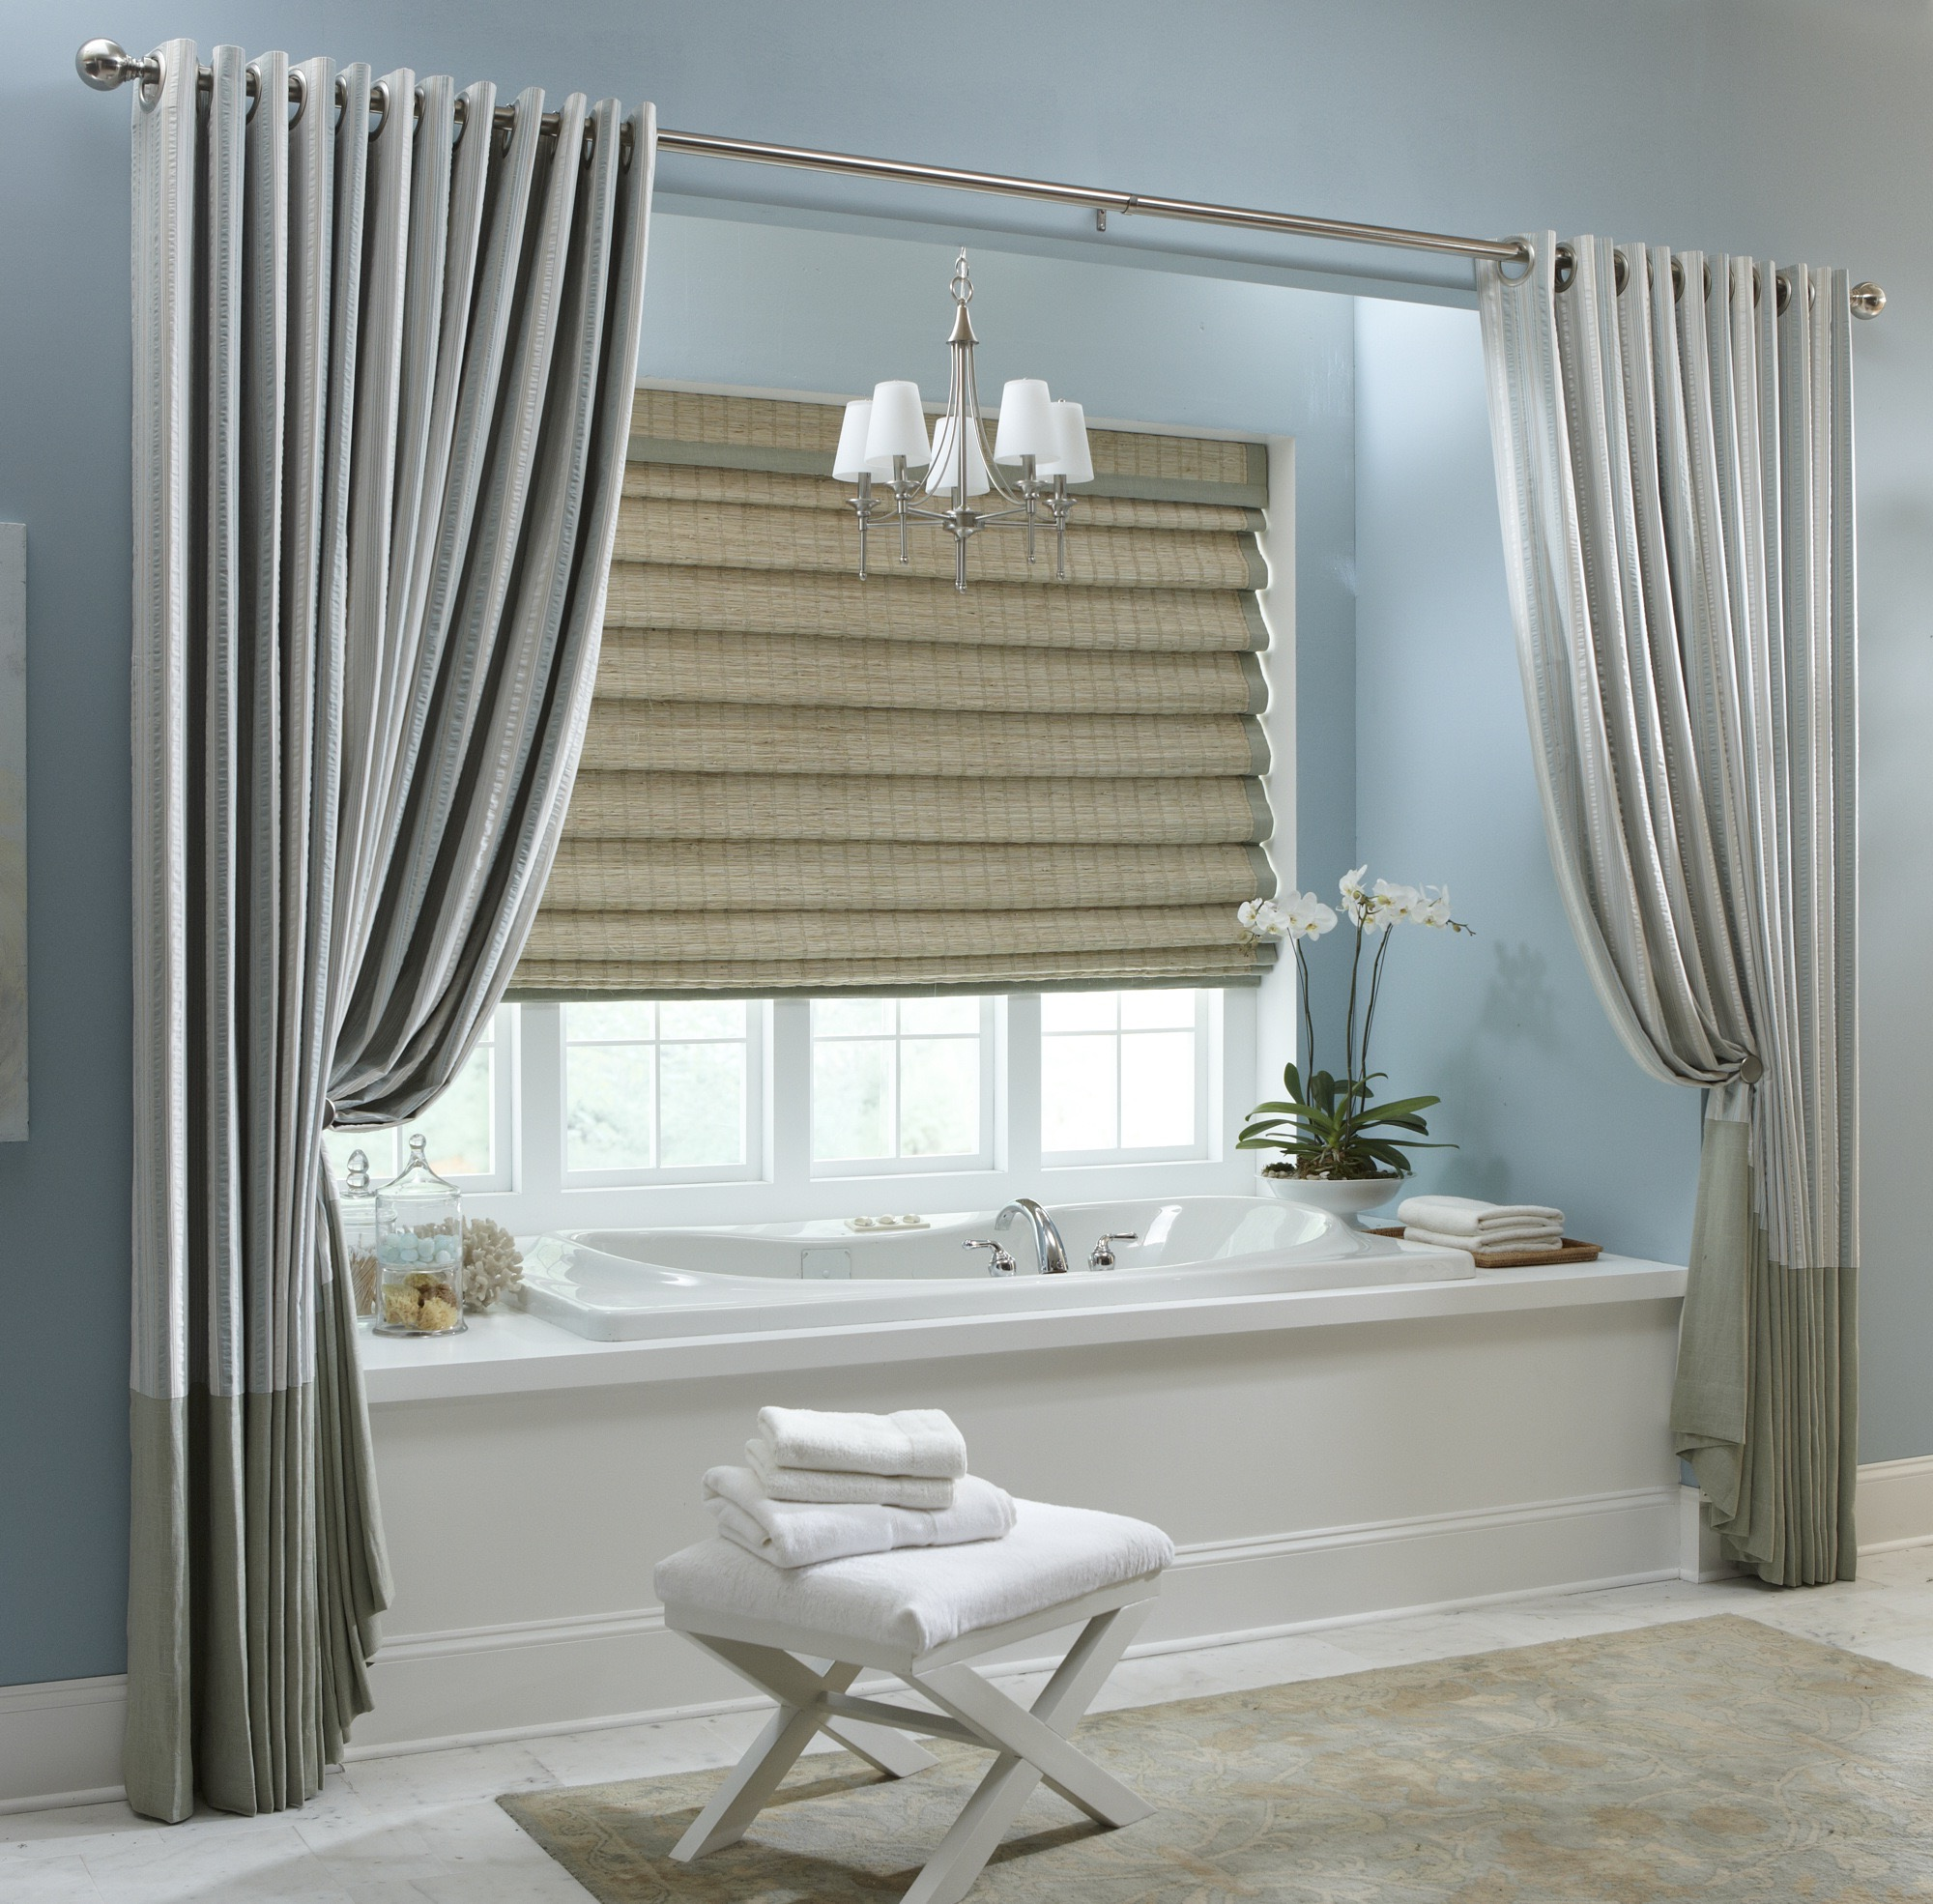 Modern Bathroom Shower Curtain And Bamboo Window Curtain (View 8 of 15)